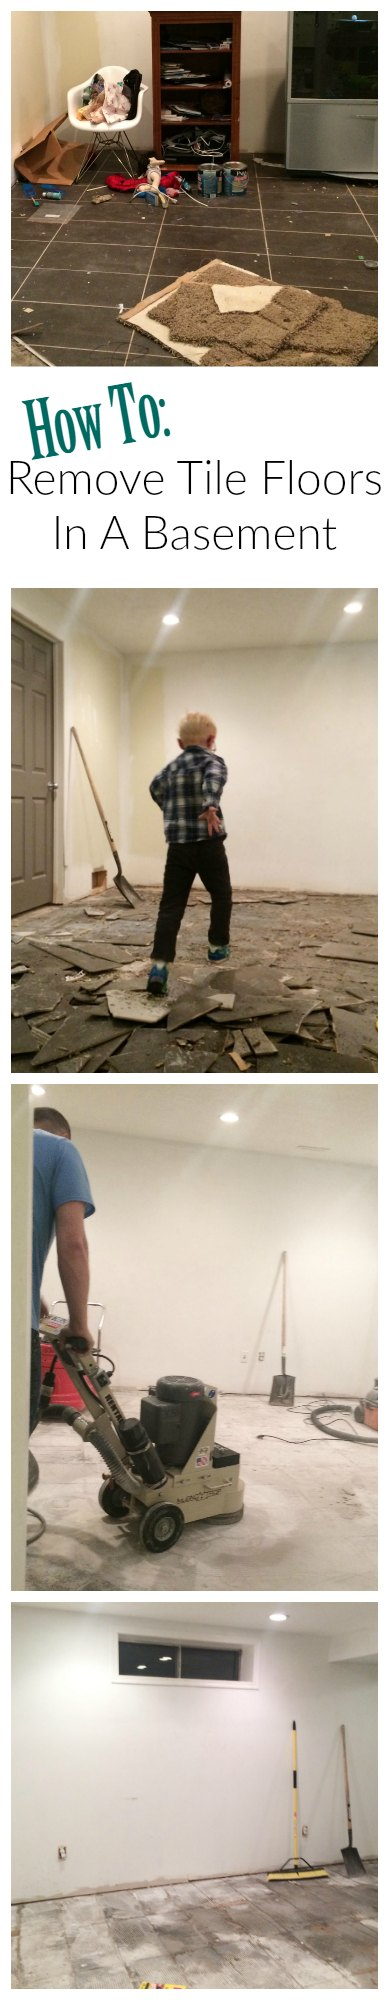 remove-tile-floors-in-basement